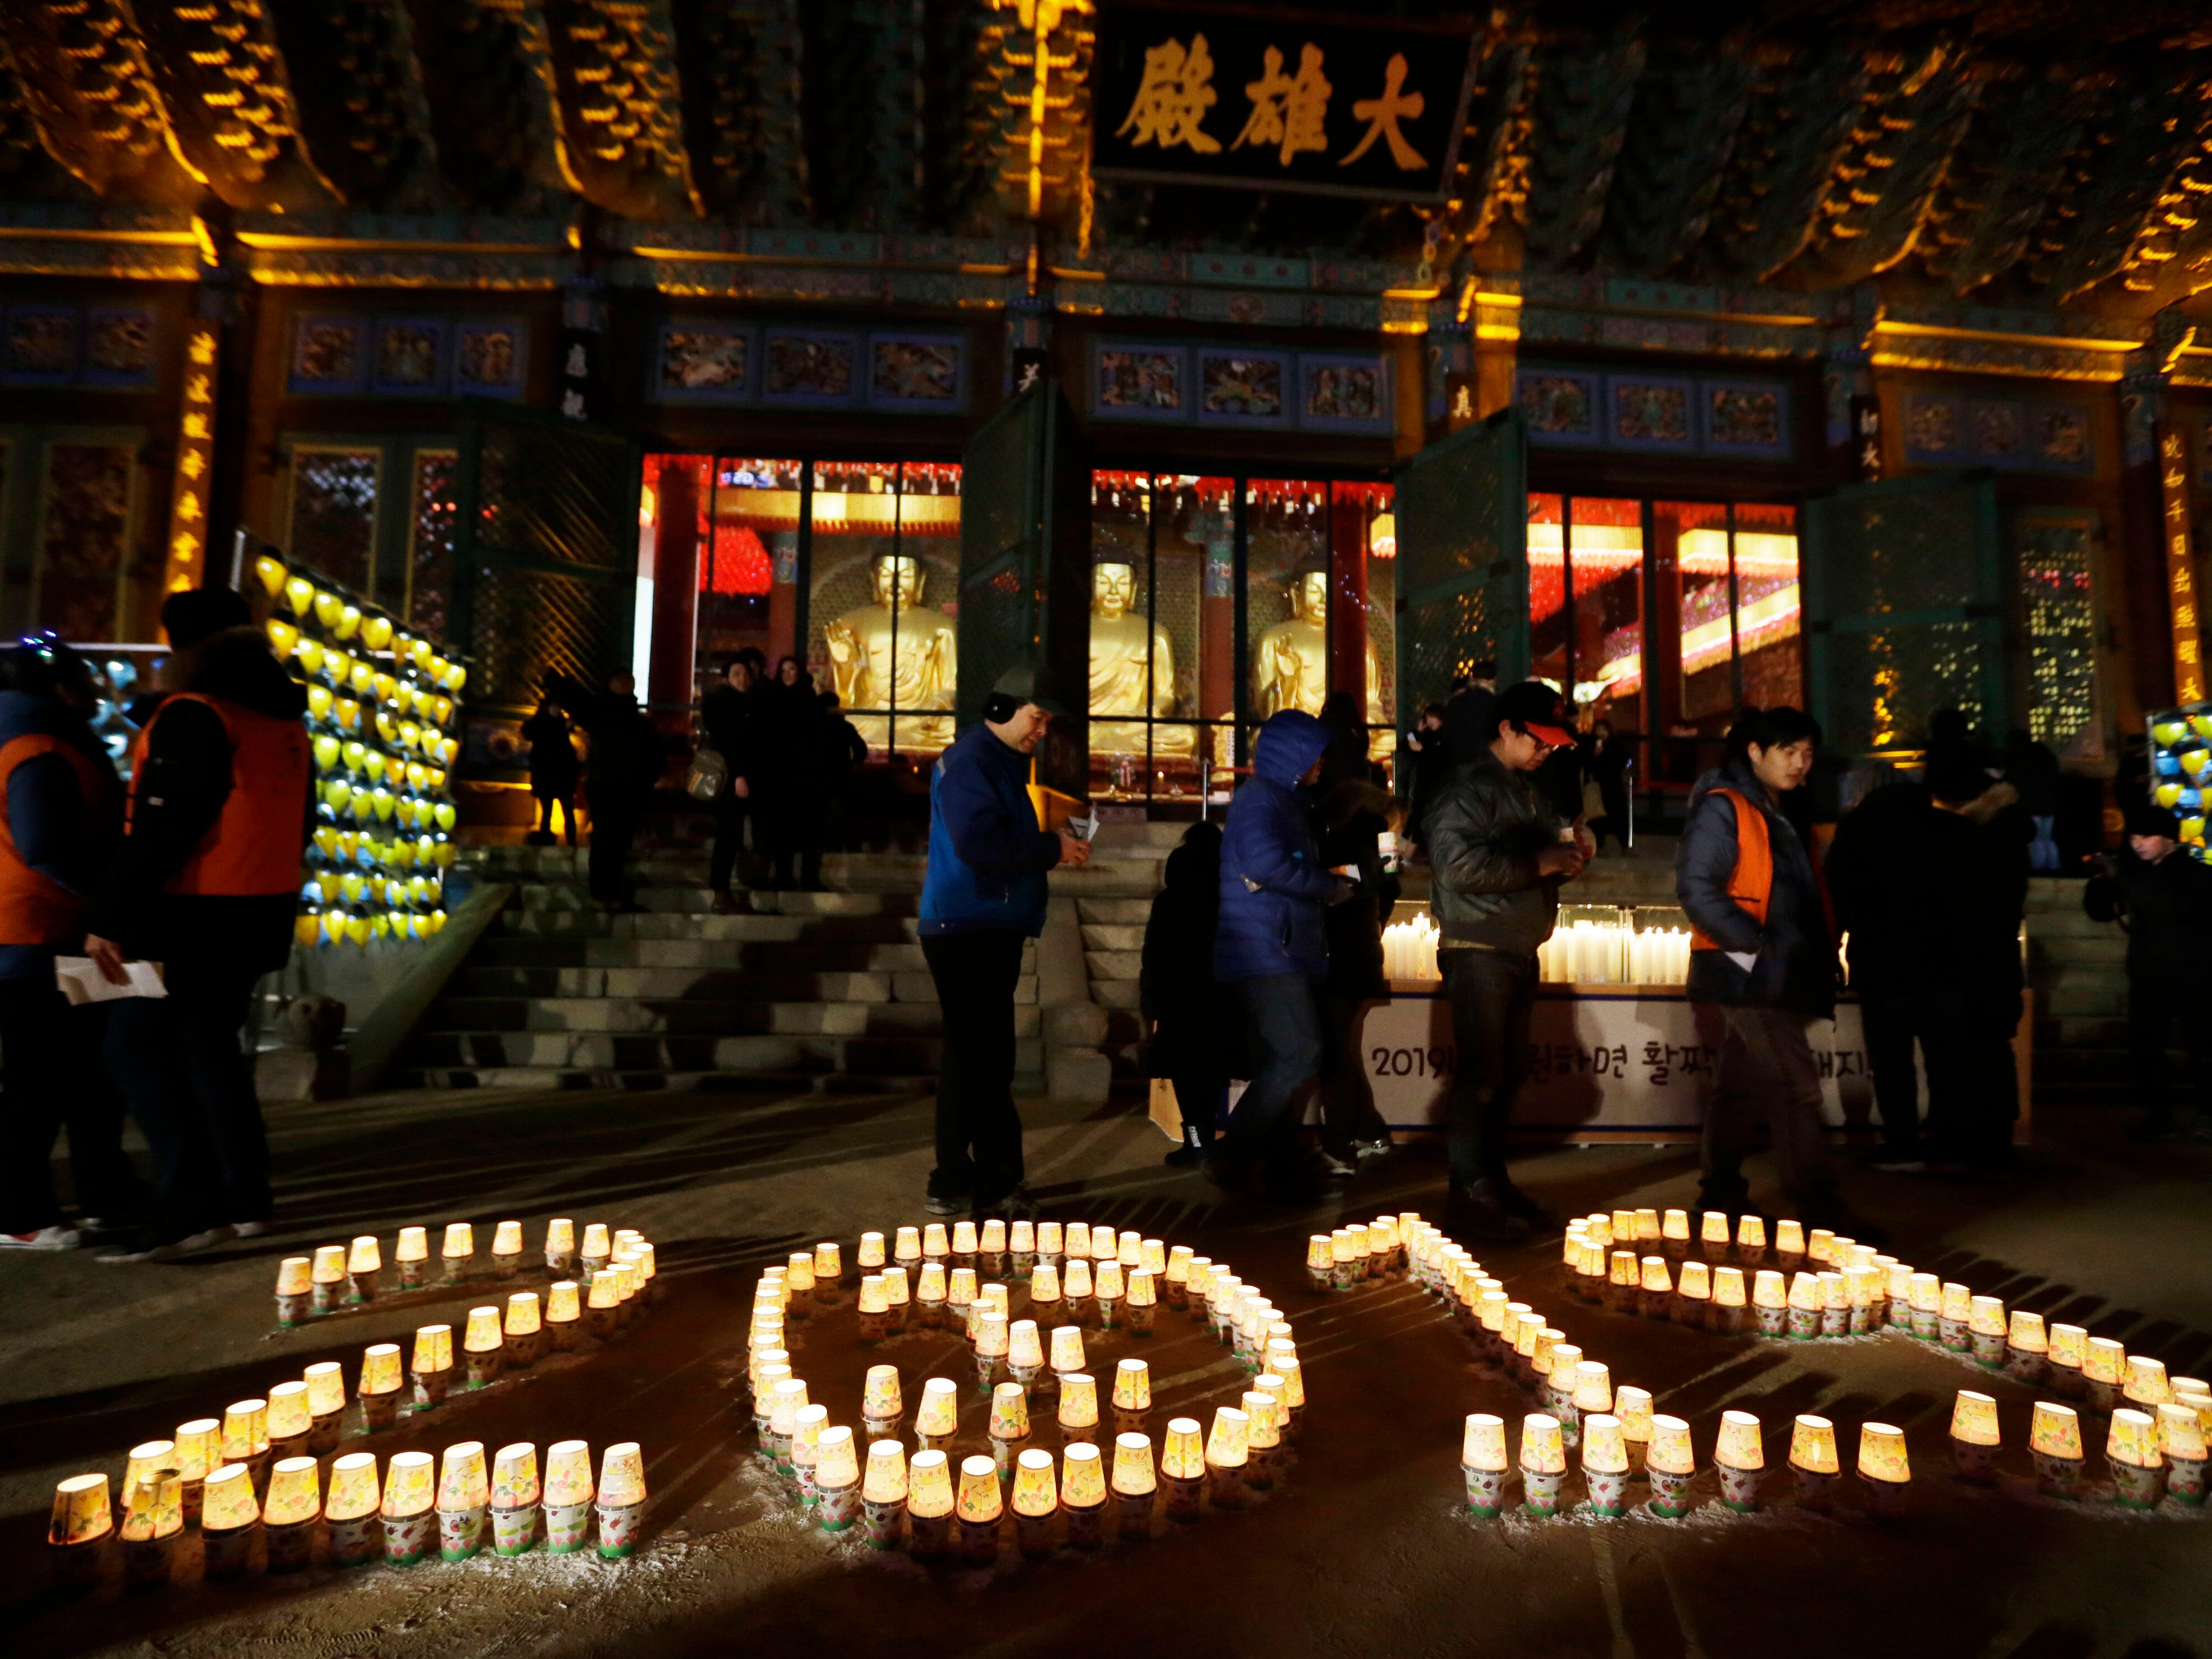 Buddhists light candles during New Year's celebrations at Jogyesa Buddhist temple in Seoul, South Korea, on Jan. 1, 2019.